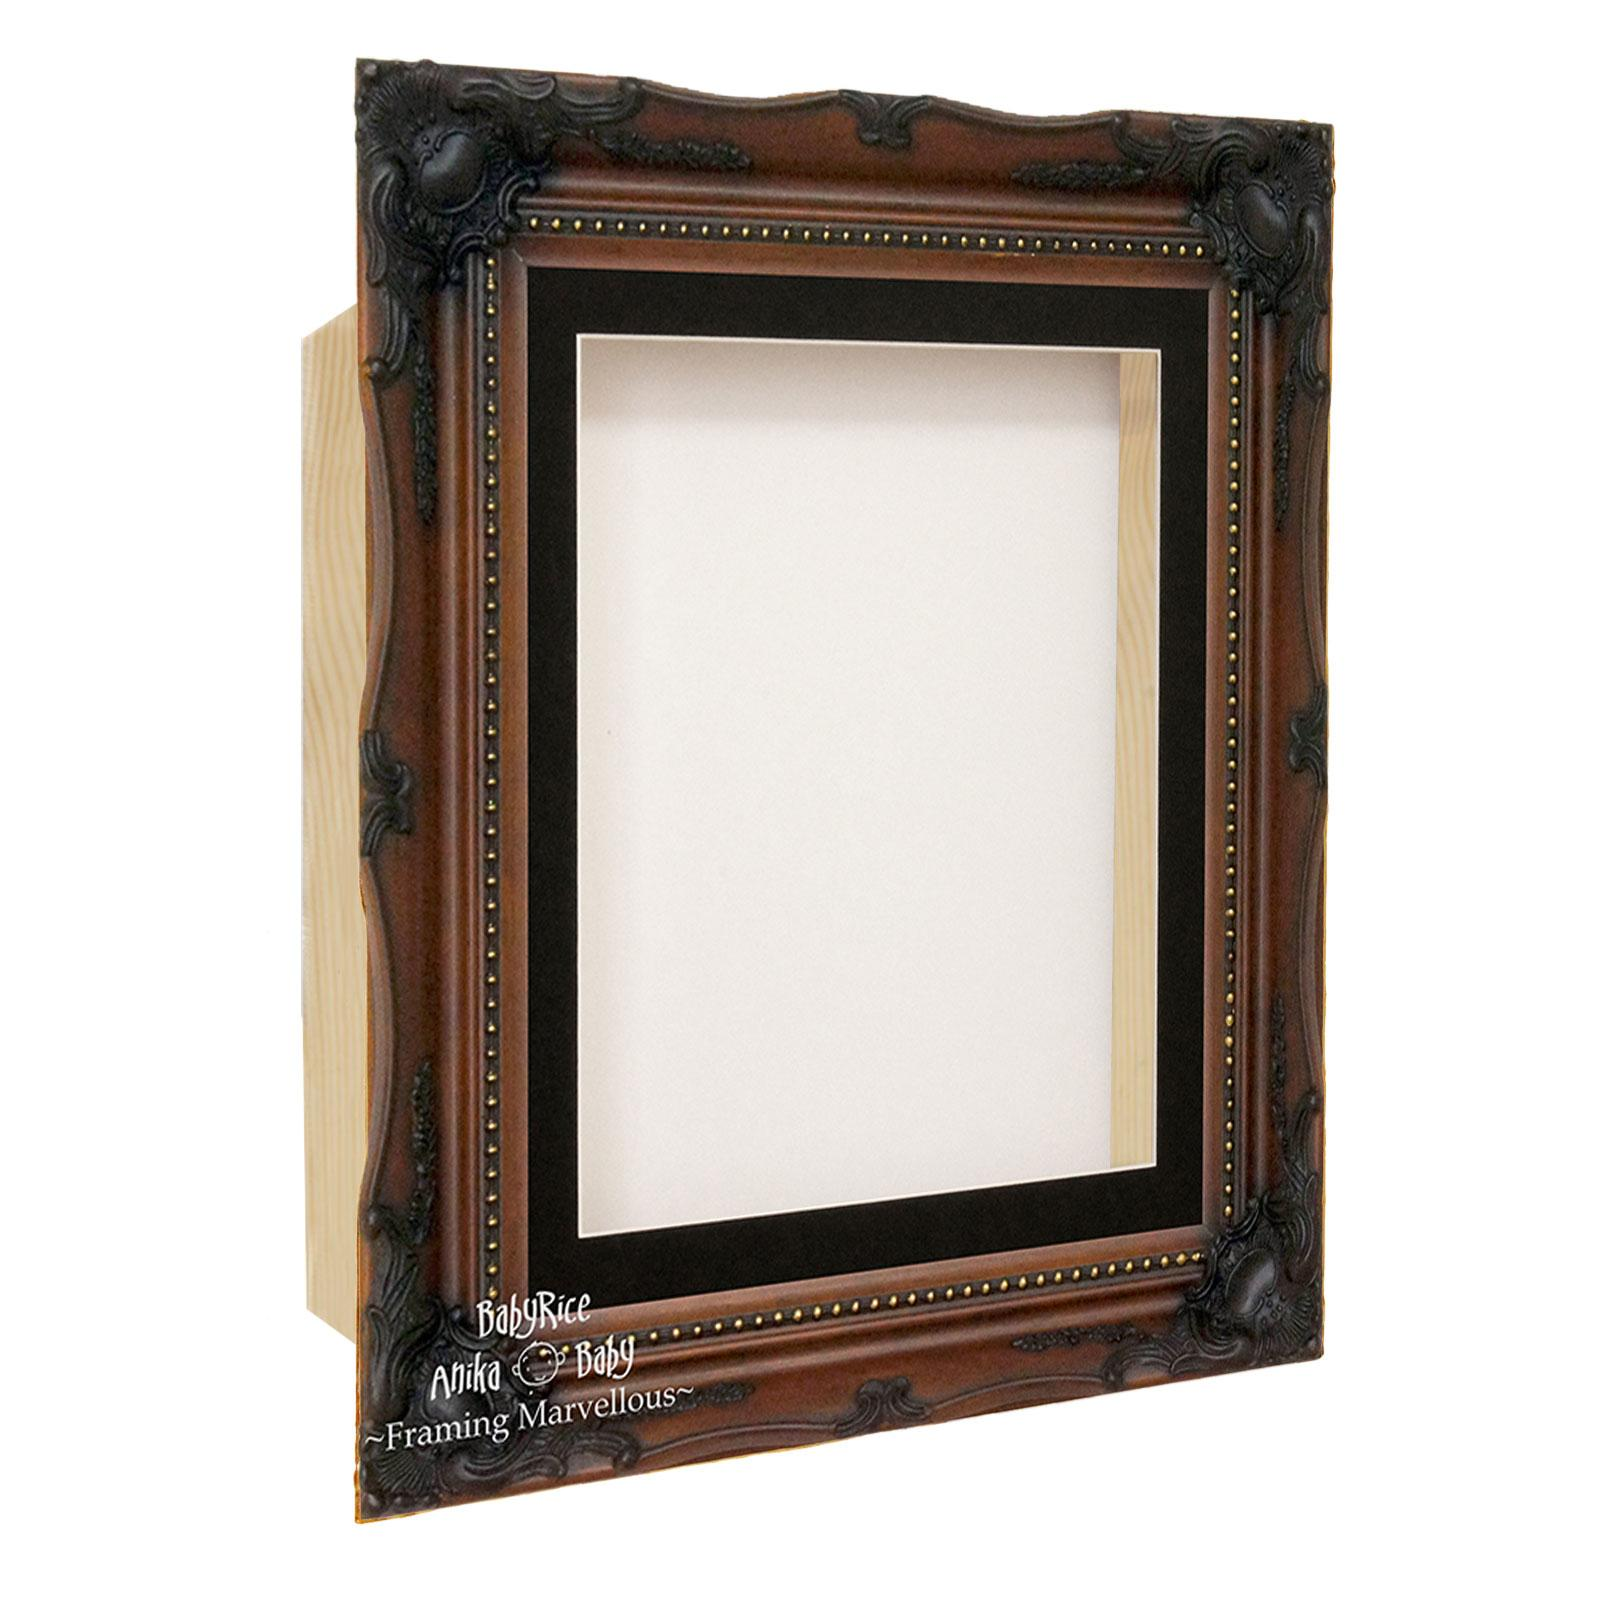 Walnut Brown Ornate Rococo Box Display Frame